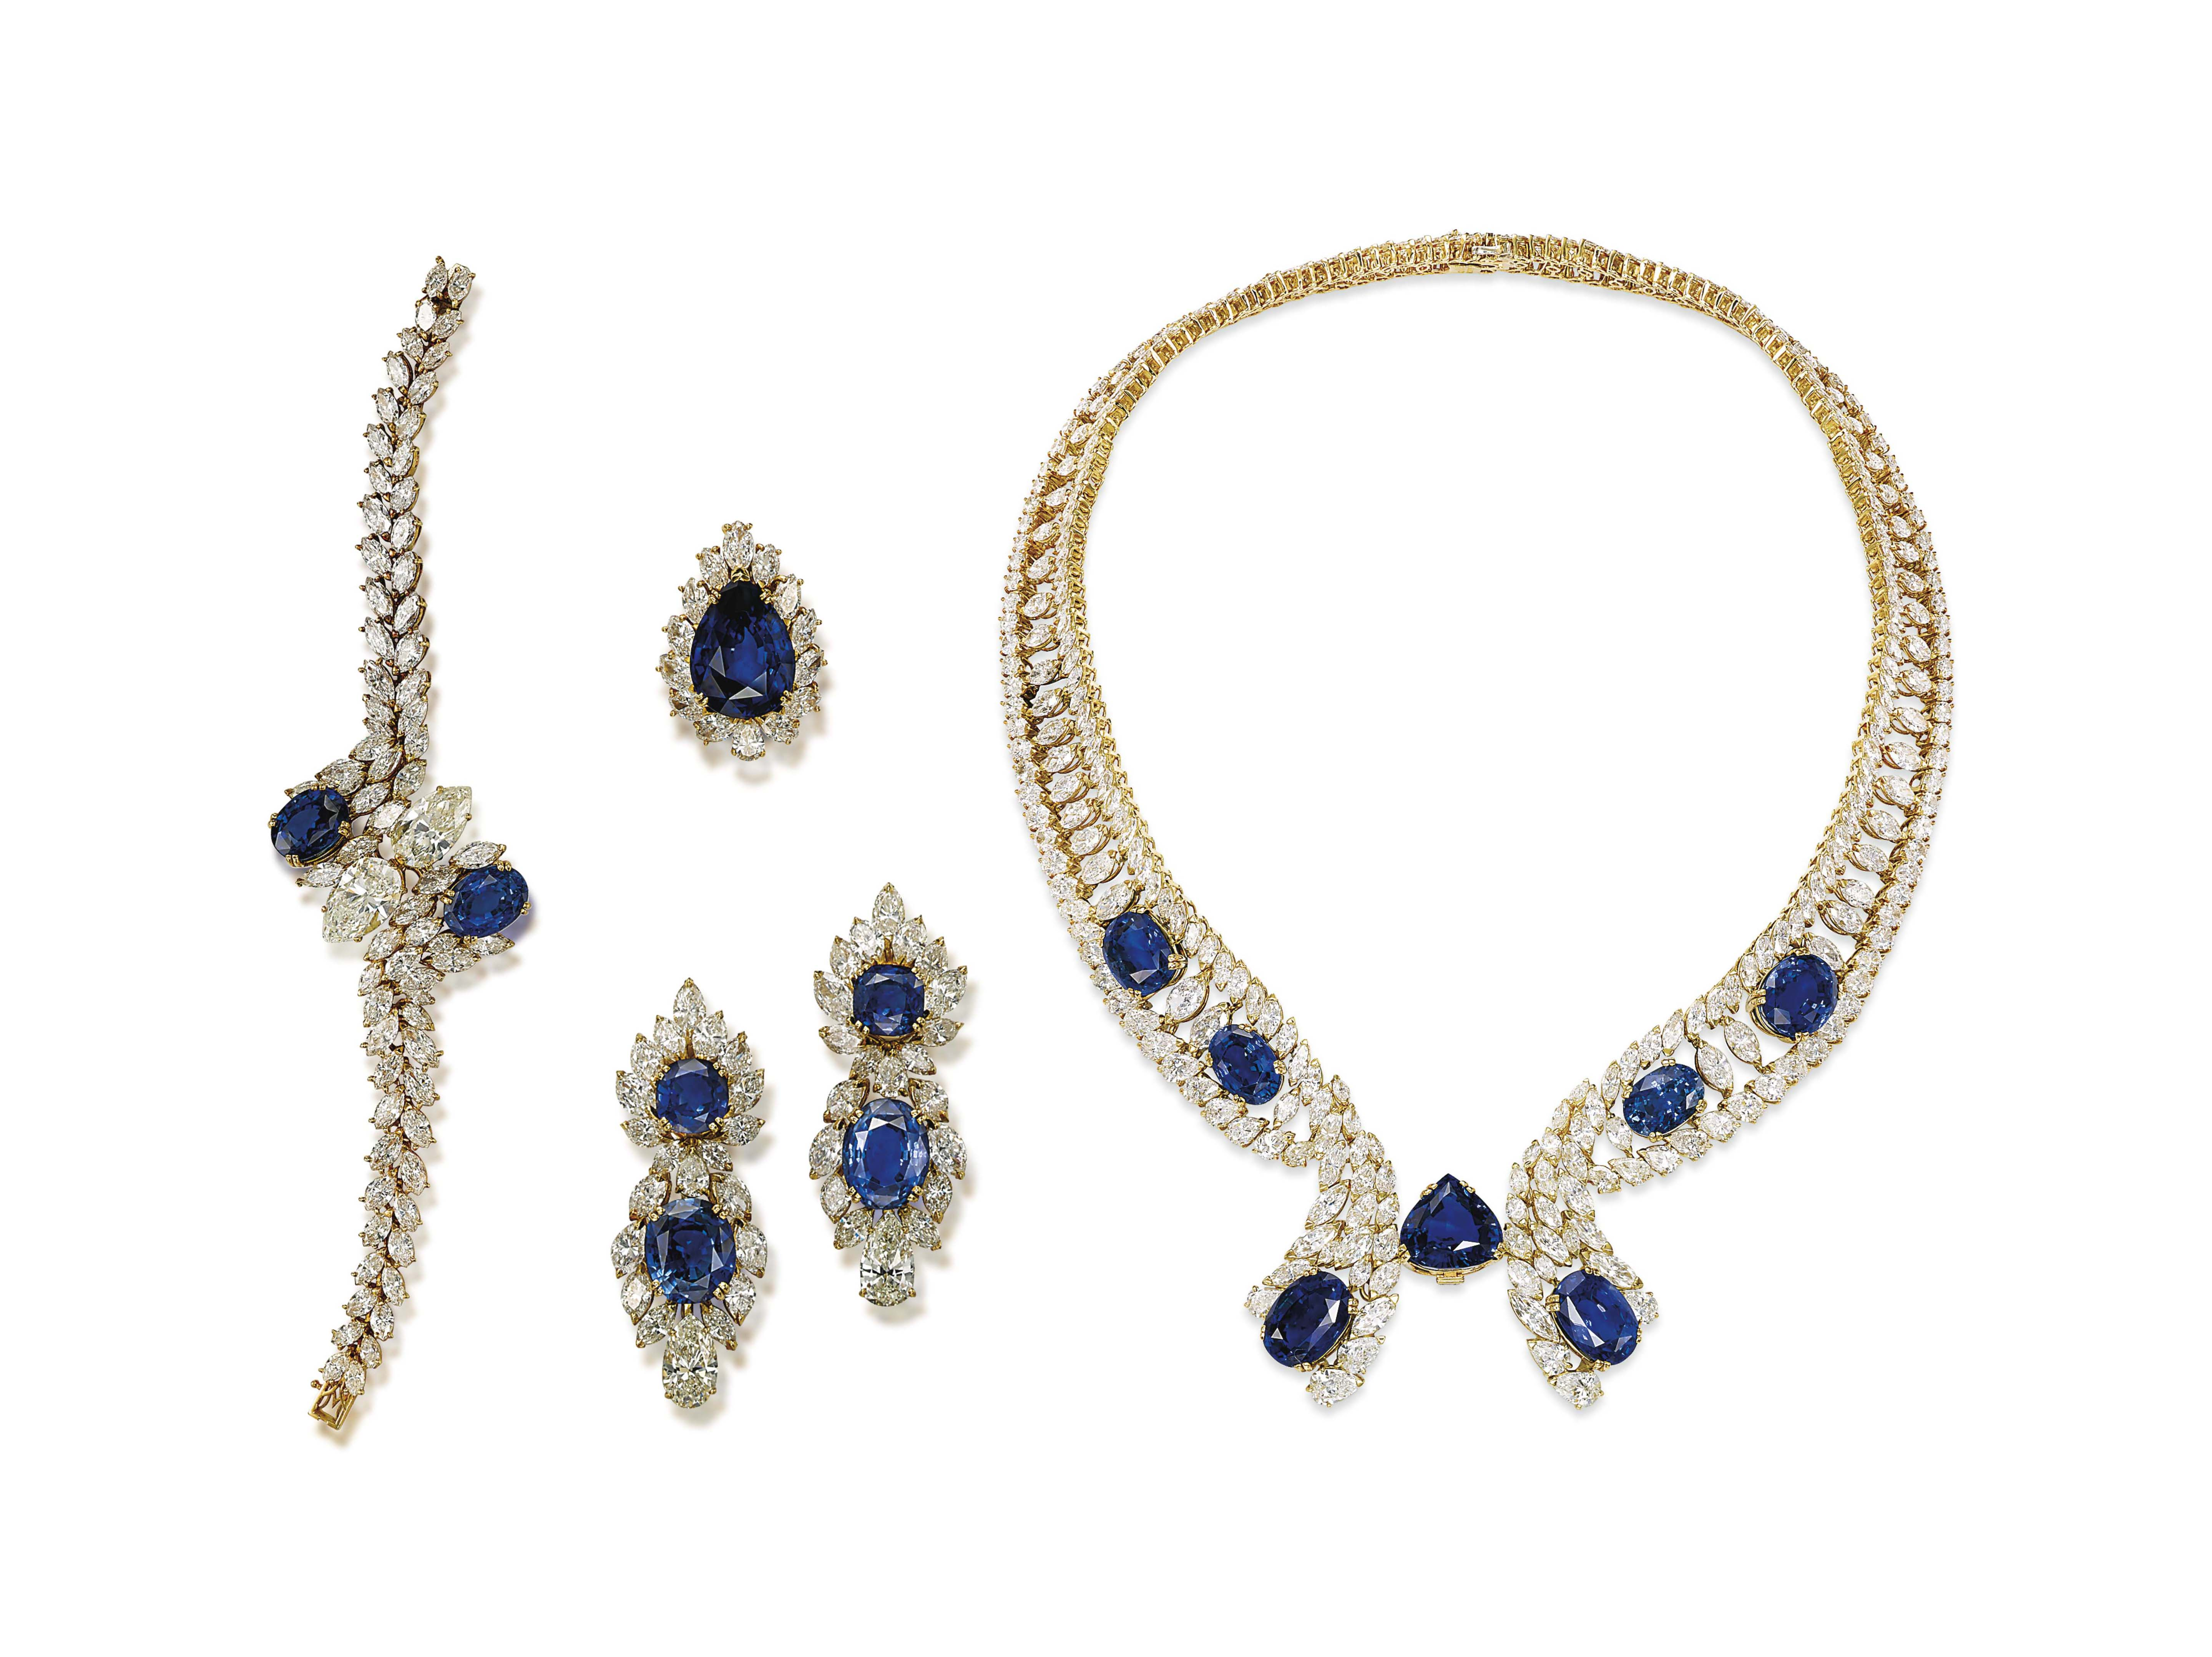 A SUITE OF SAPPHIRE AND DIAMON